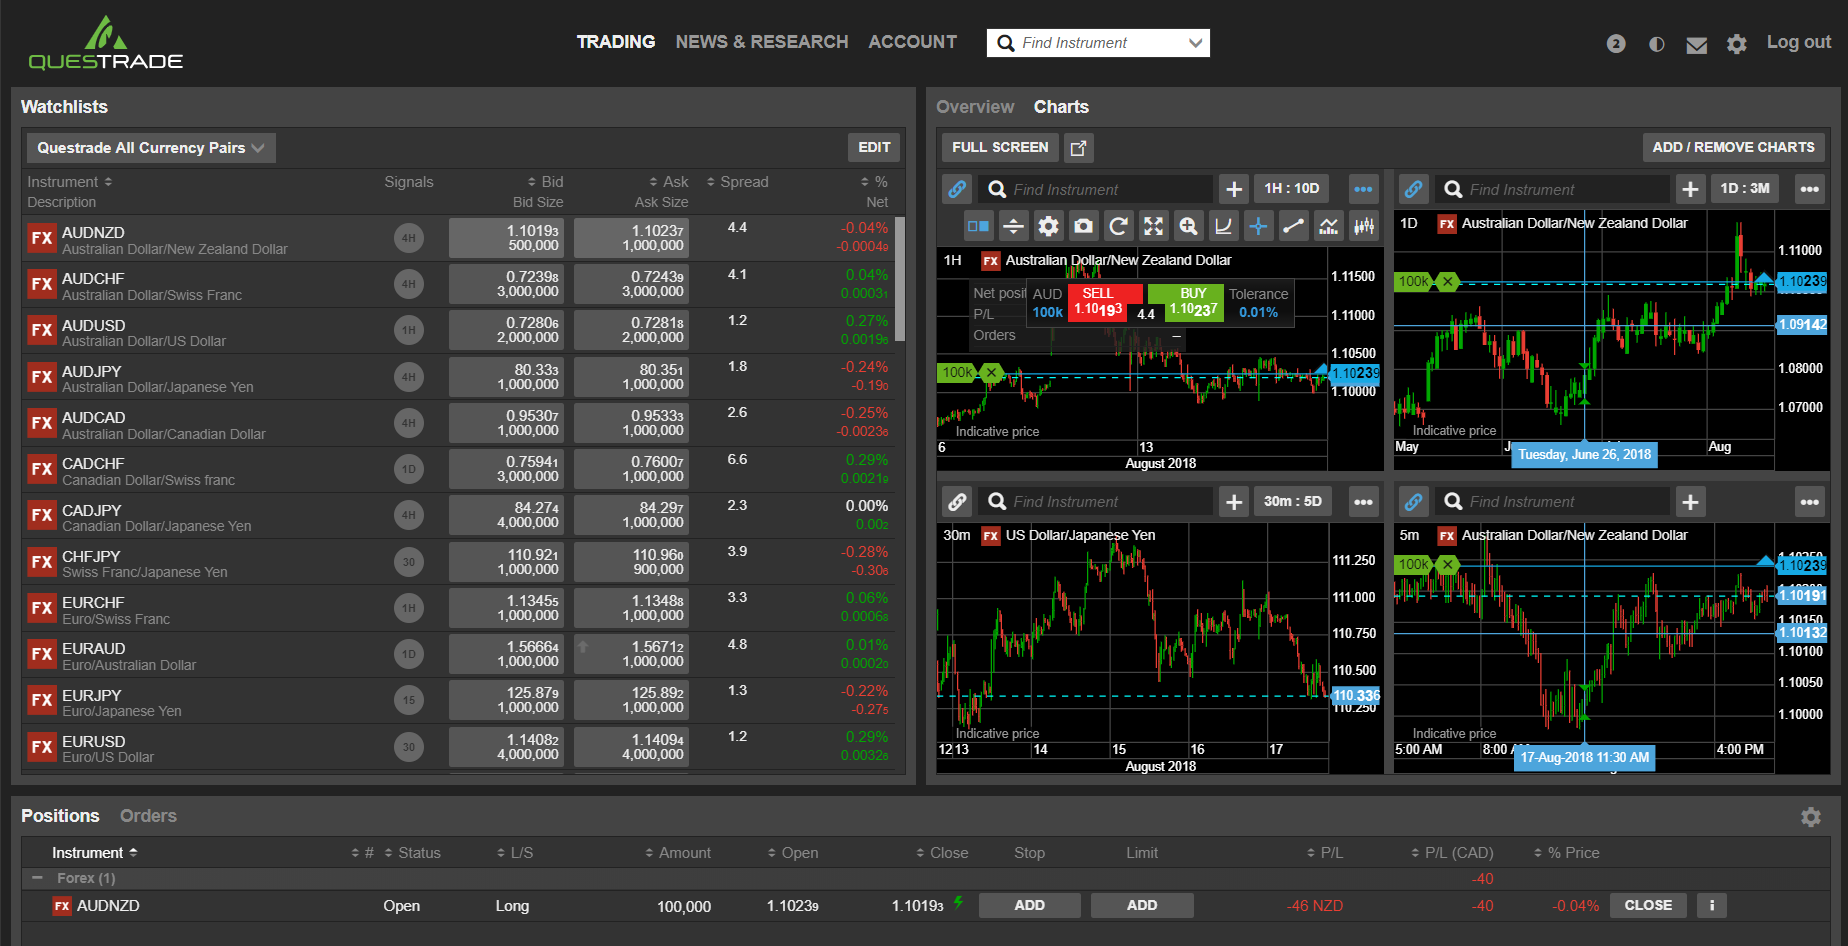 Questrade forex review